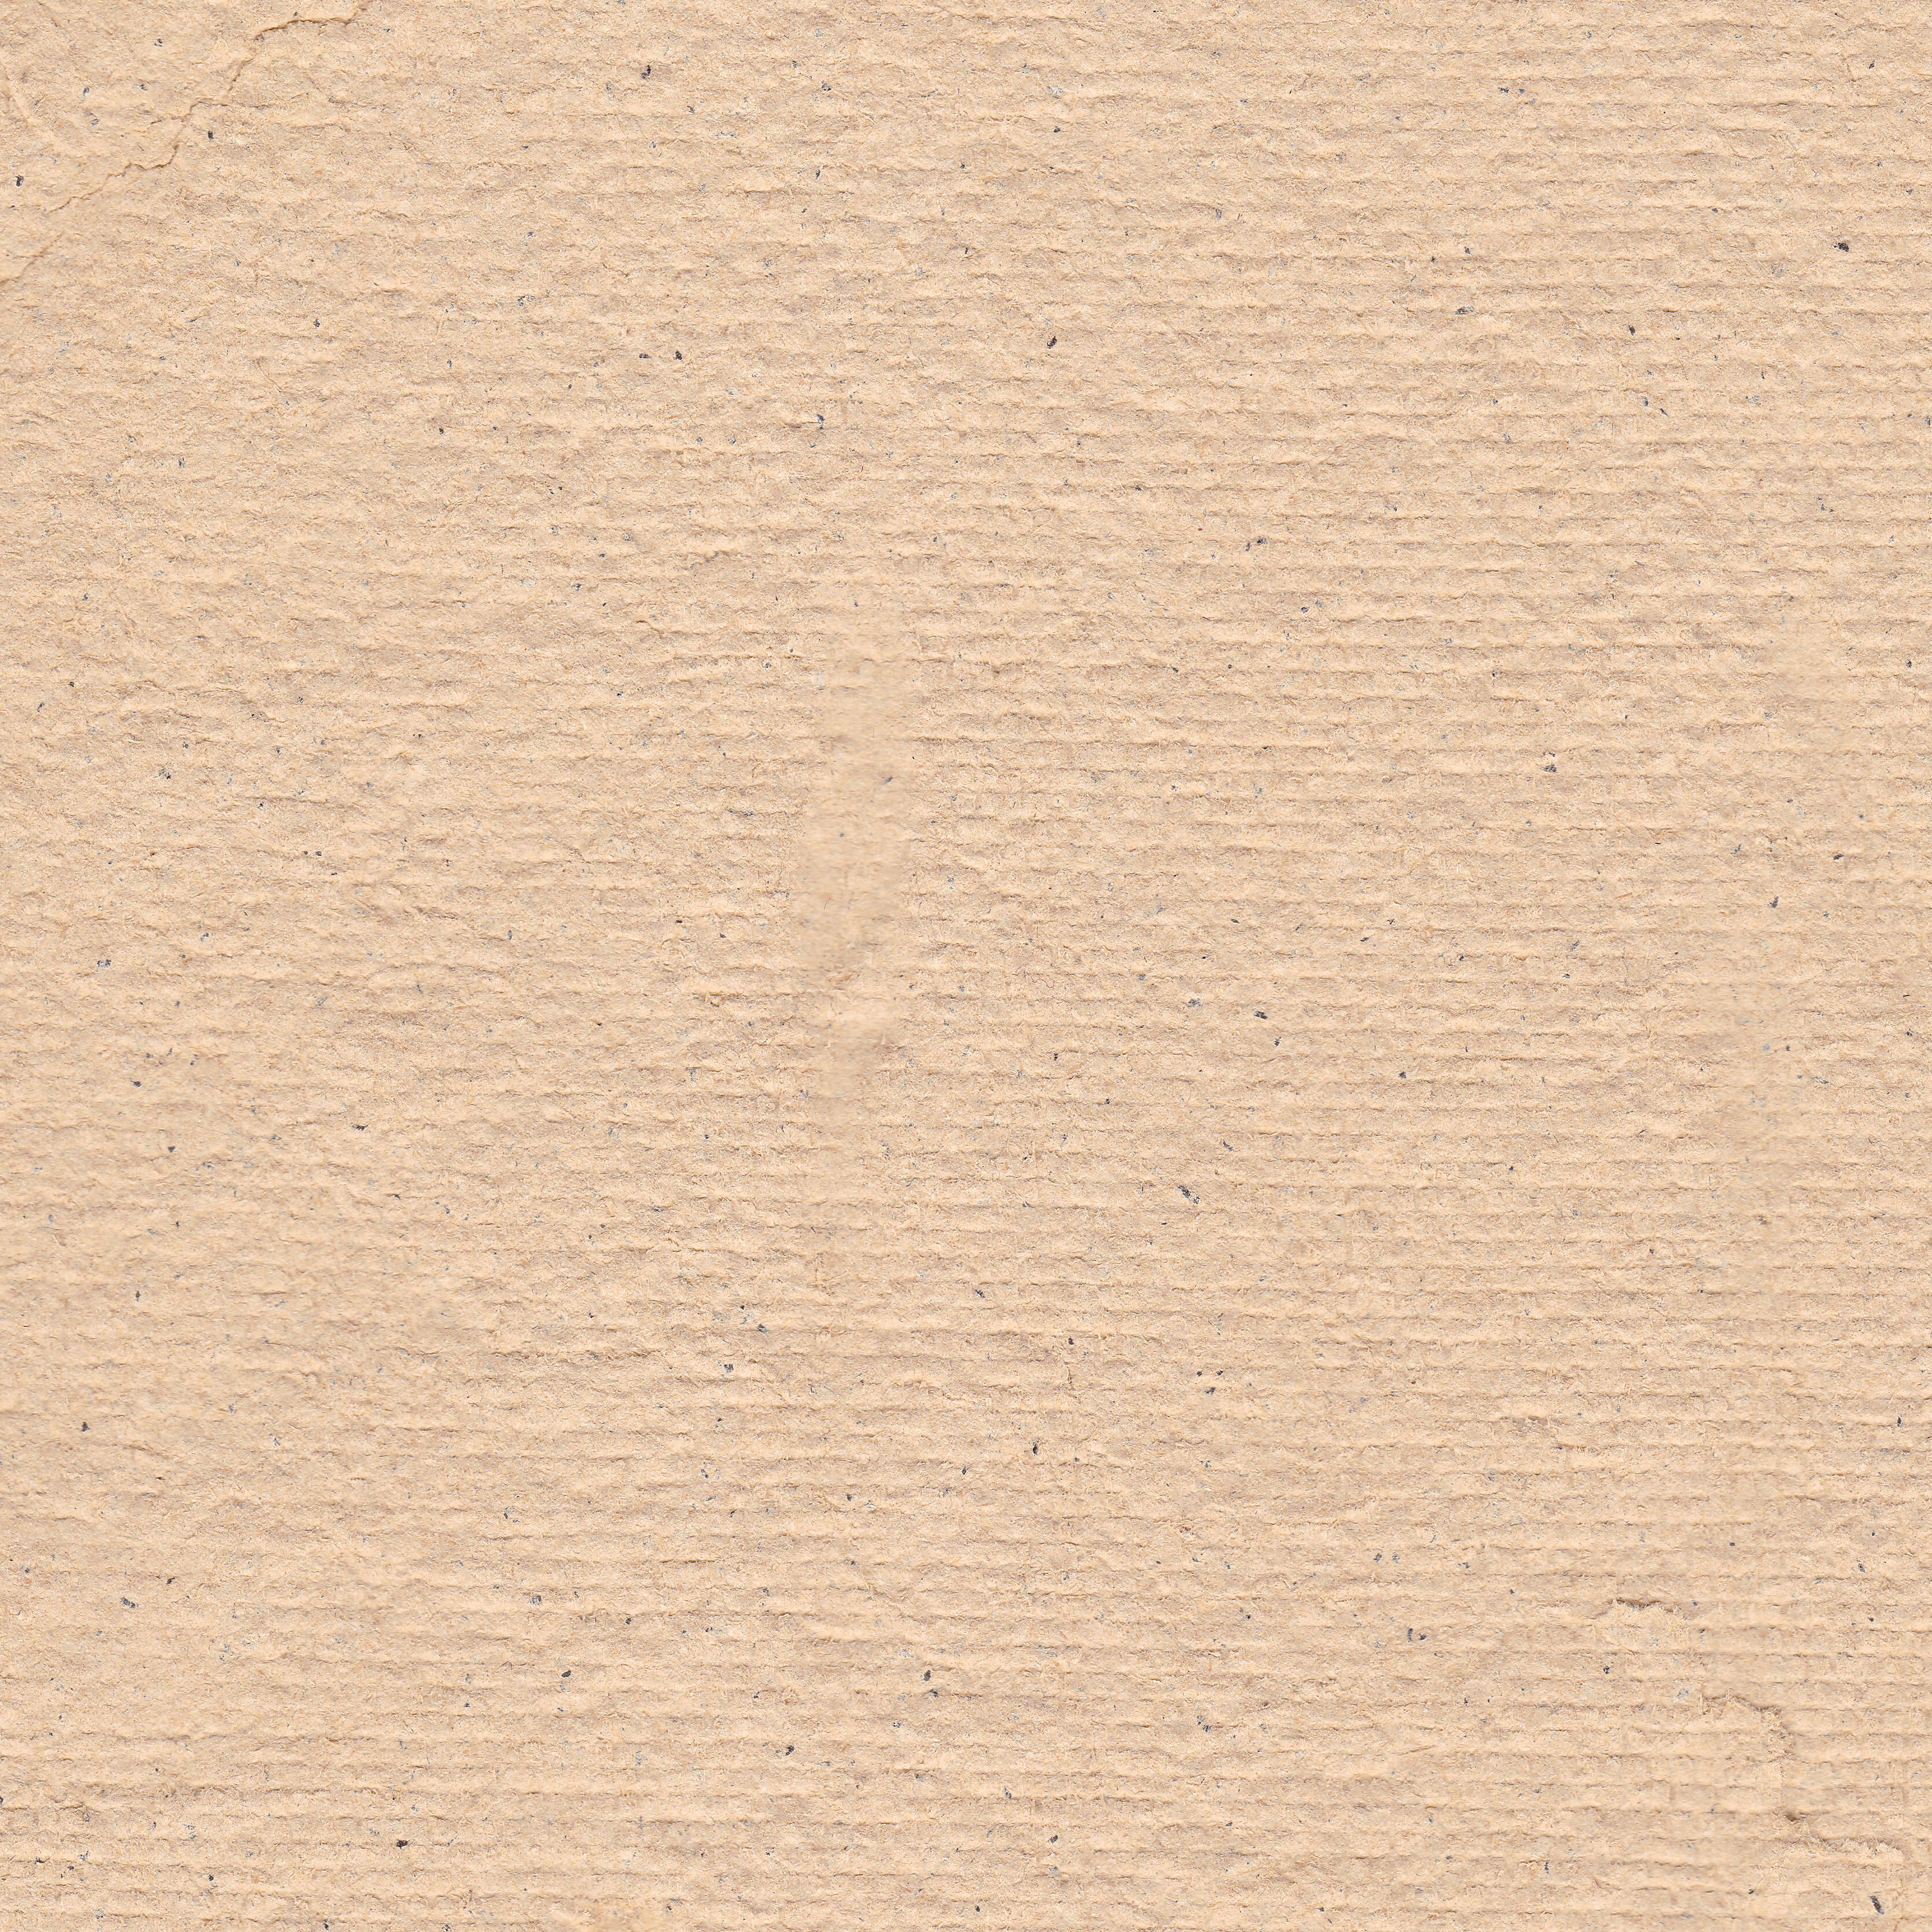 6 Rough Seamless Recycled Vintage Paper Texture (JPG